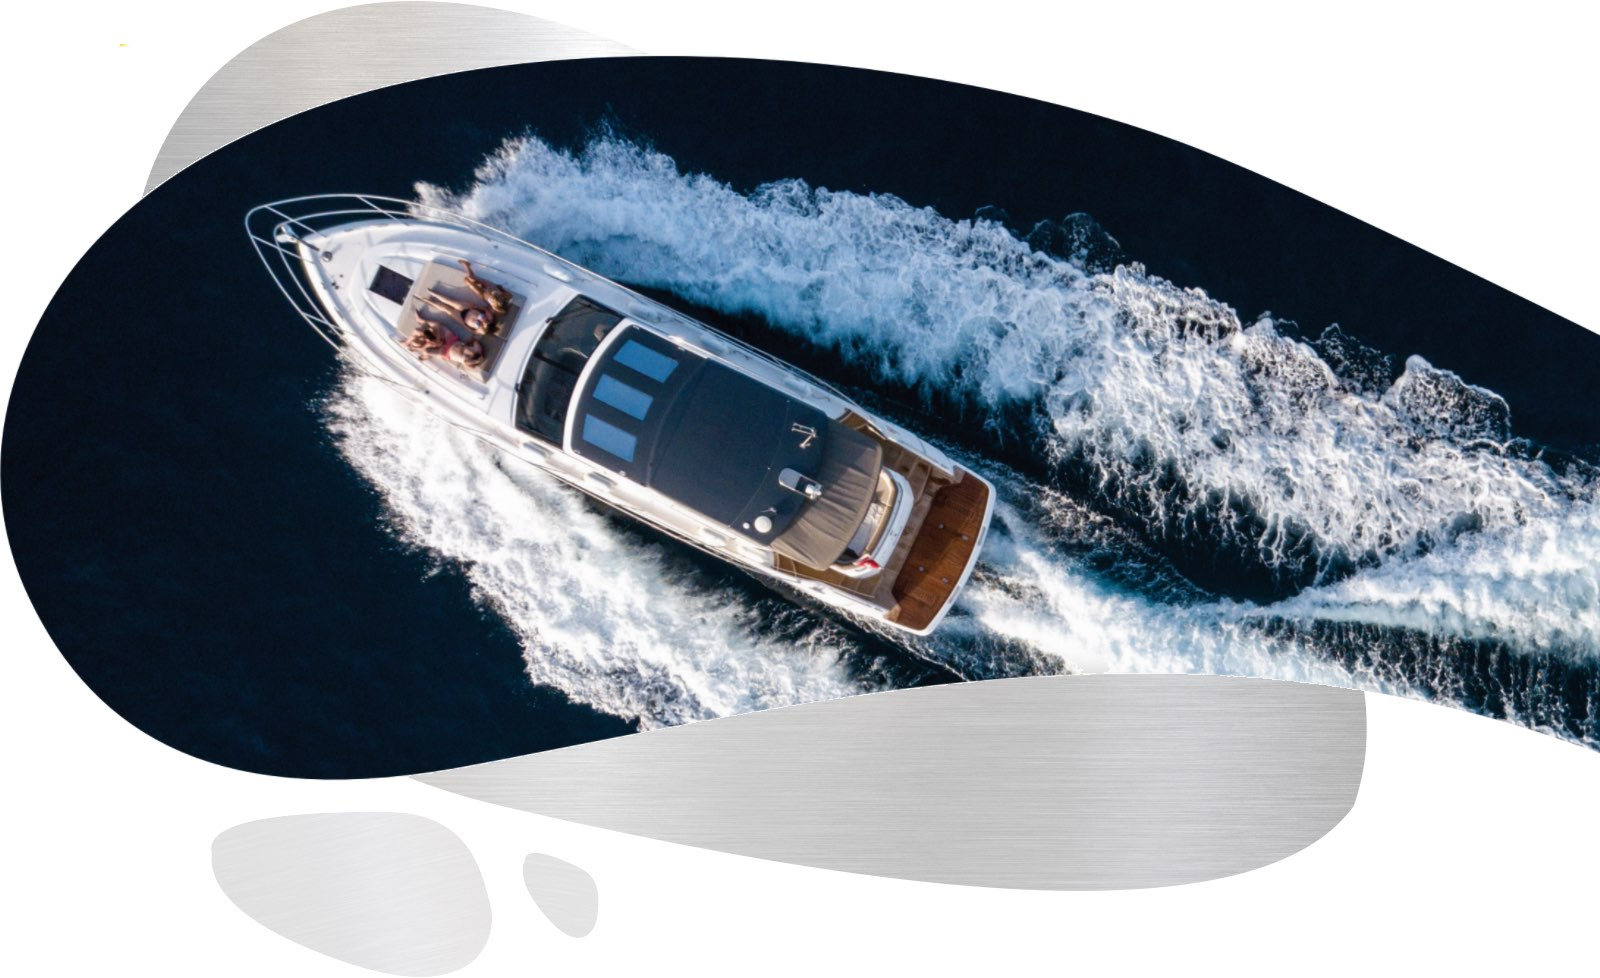 a birds eye view of a yacht